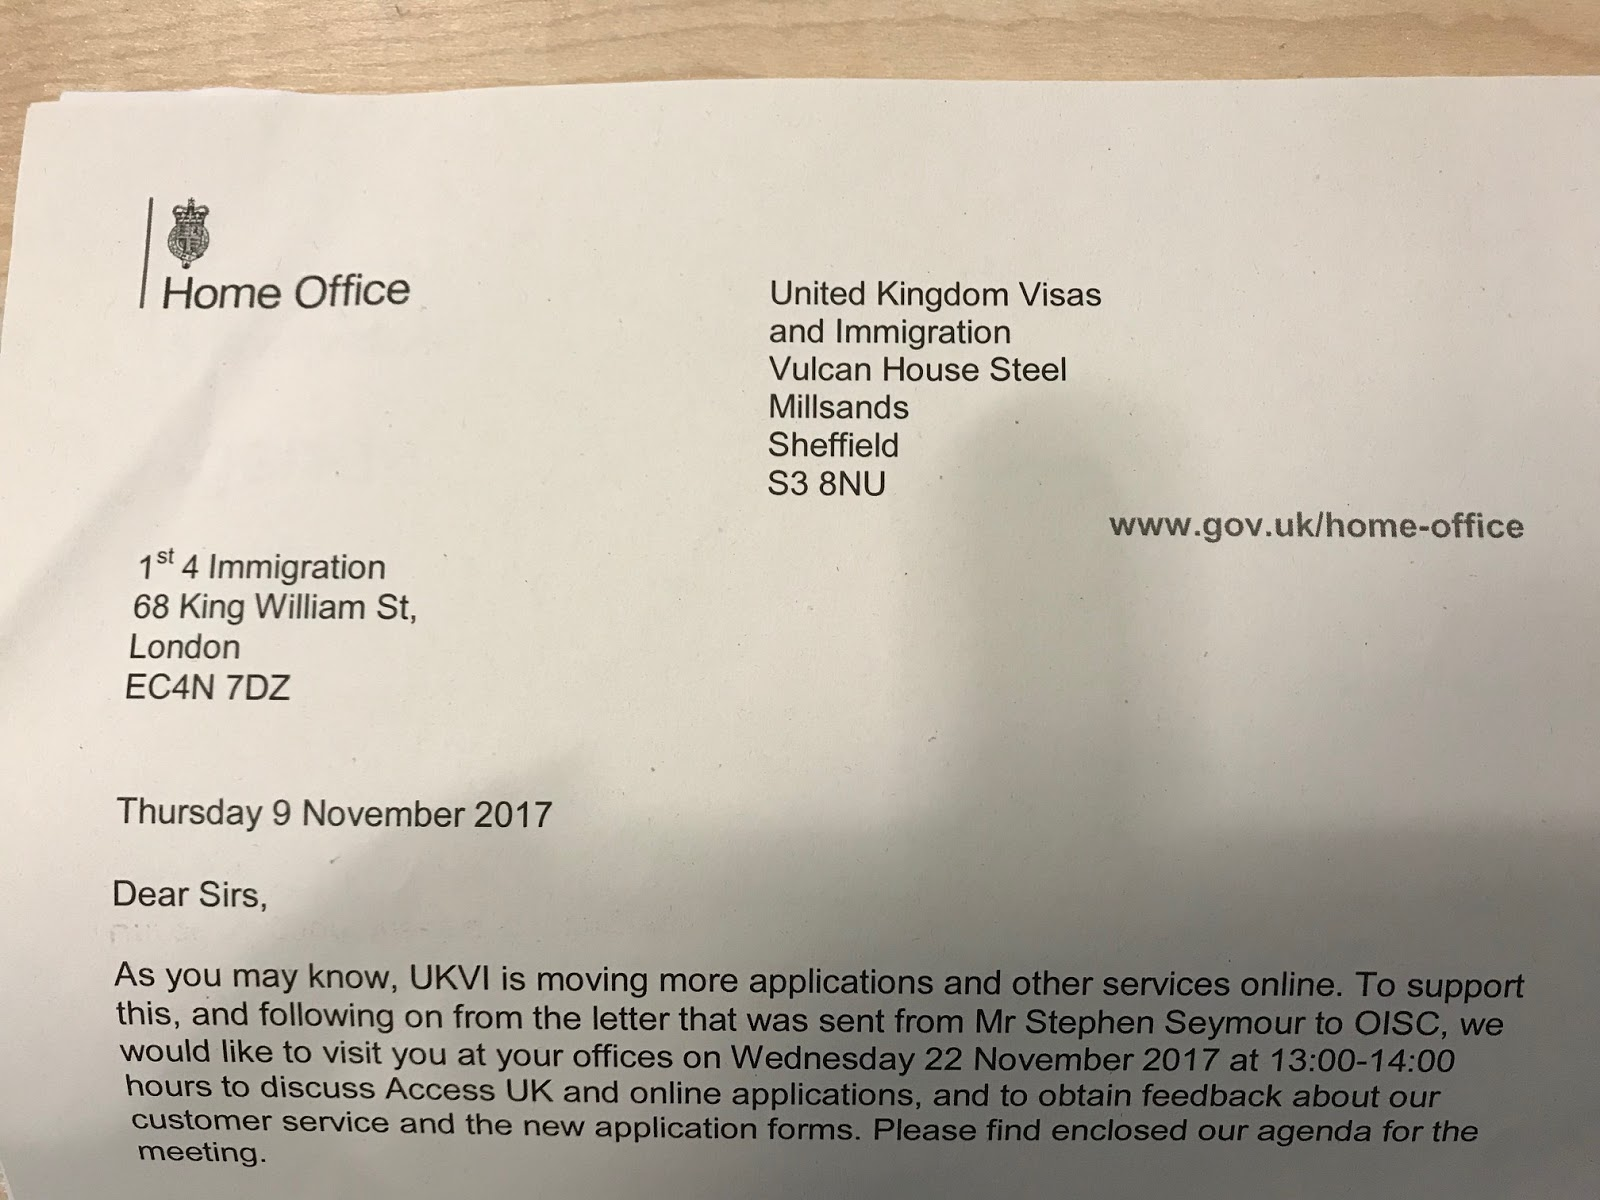 As Can Be Seen On The Home Office Letter (pictured), We Were Selected As  One Of Only Approximately 50 Firms In The Whole Country, Following The  Request Of ...